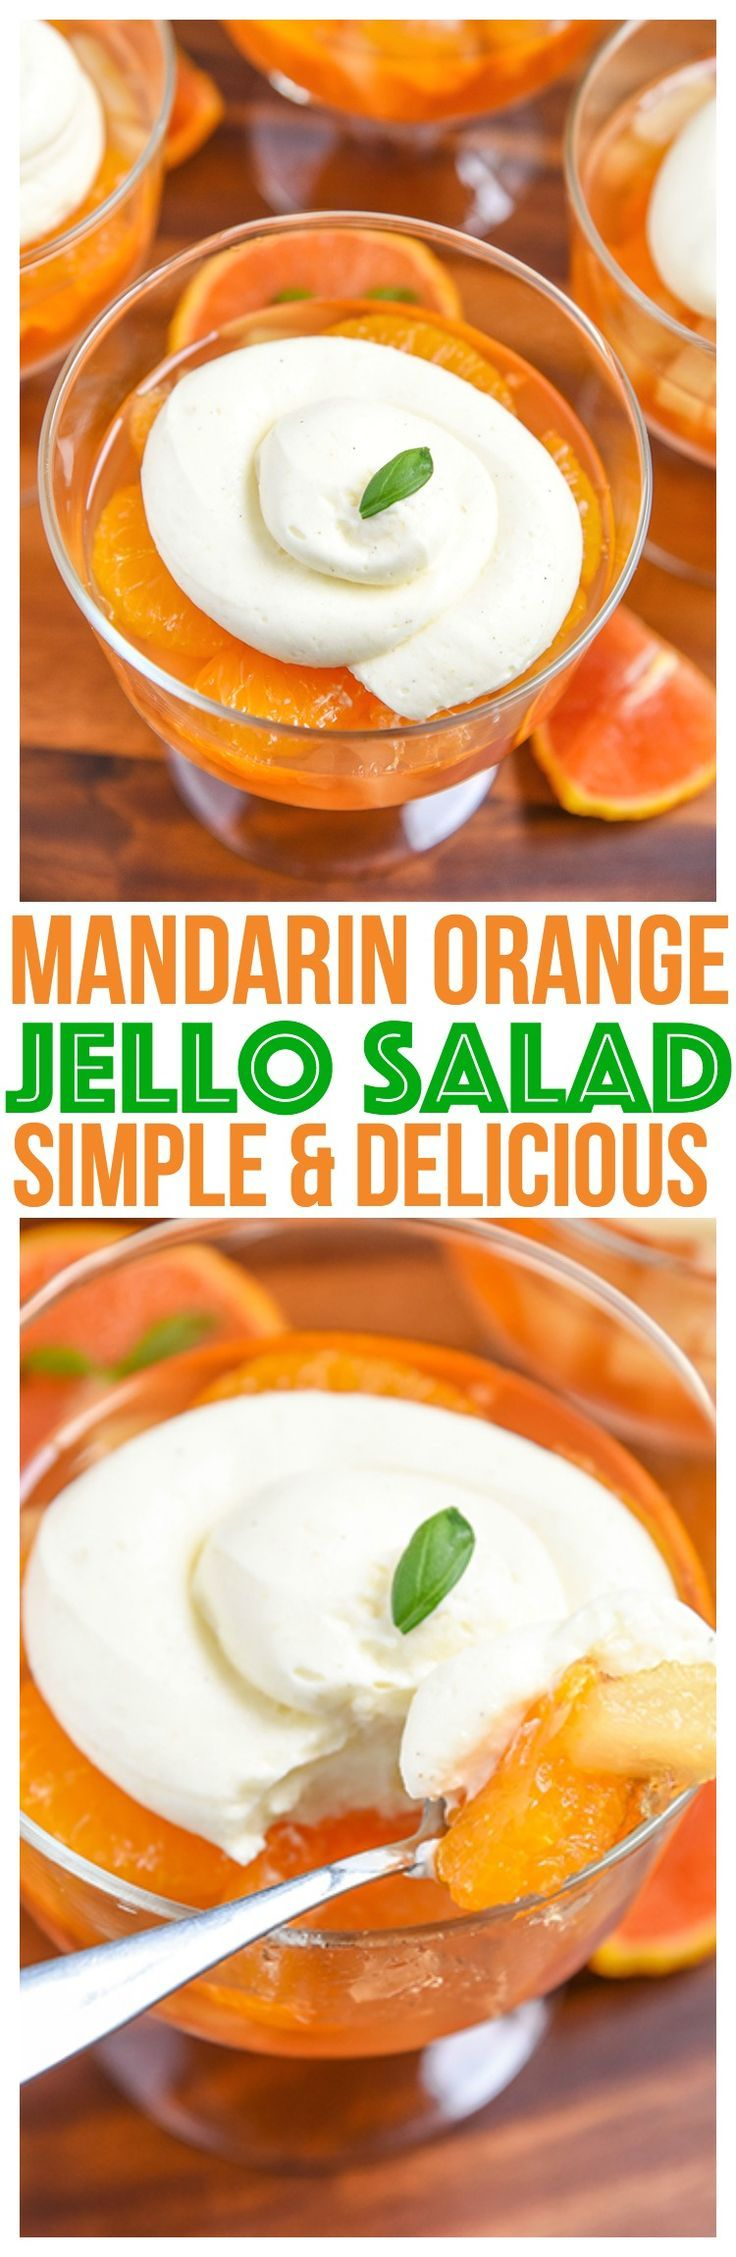 Quick easy Mandarin Orange Jello Salad Recipe. Simple gelatin dessert for summer parties! Kid Friendly Recipe Mini Chef Mondays, Jello salad with pudding  via @CourtneysSweets